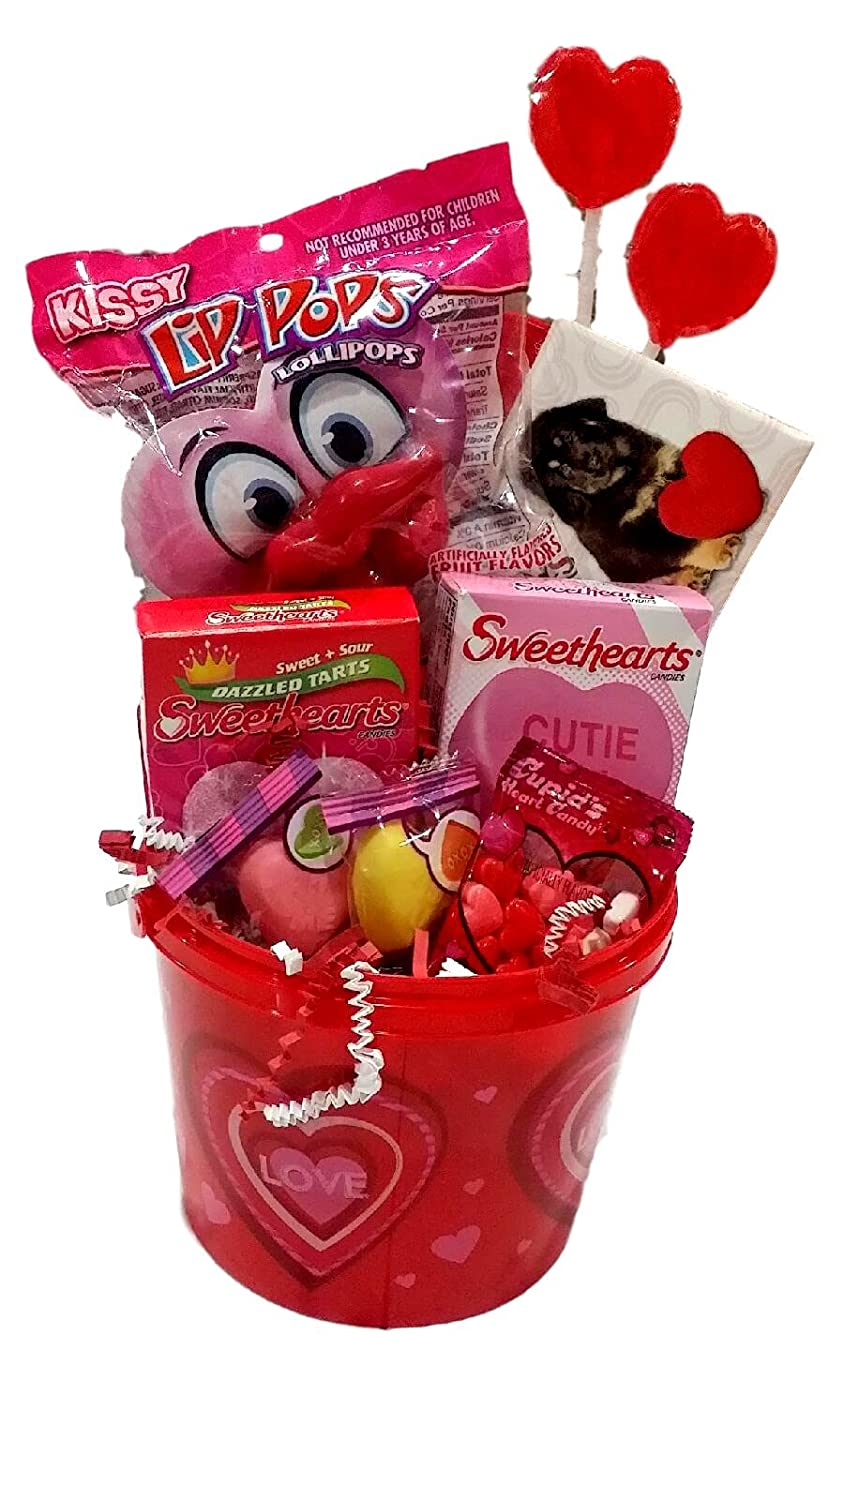 Amazon.com : Pucker Up Valentine's Day Gift Basket; Reusable ...